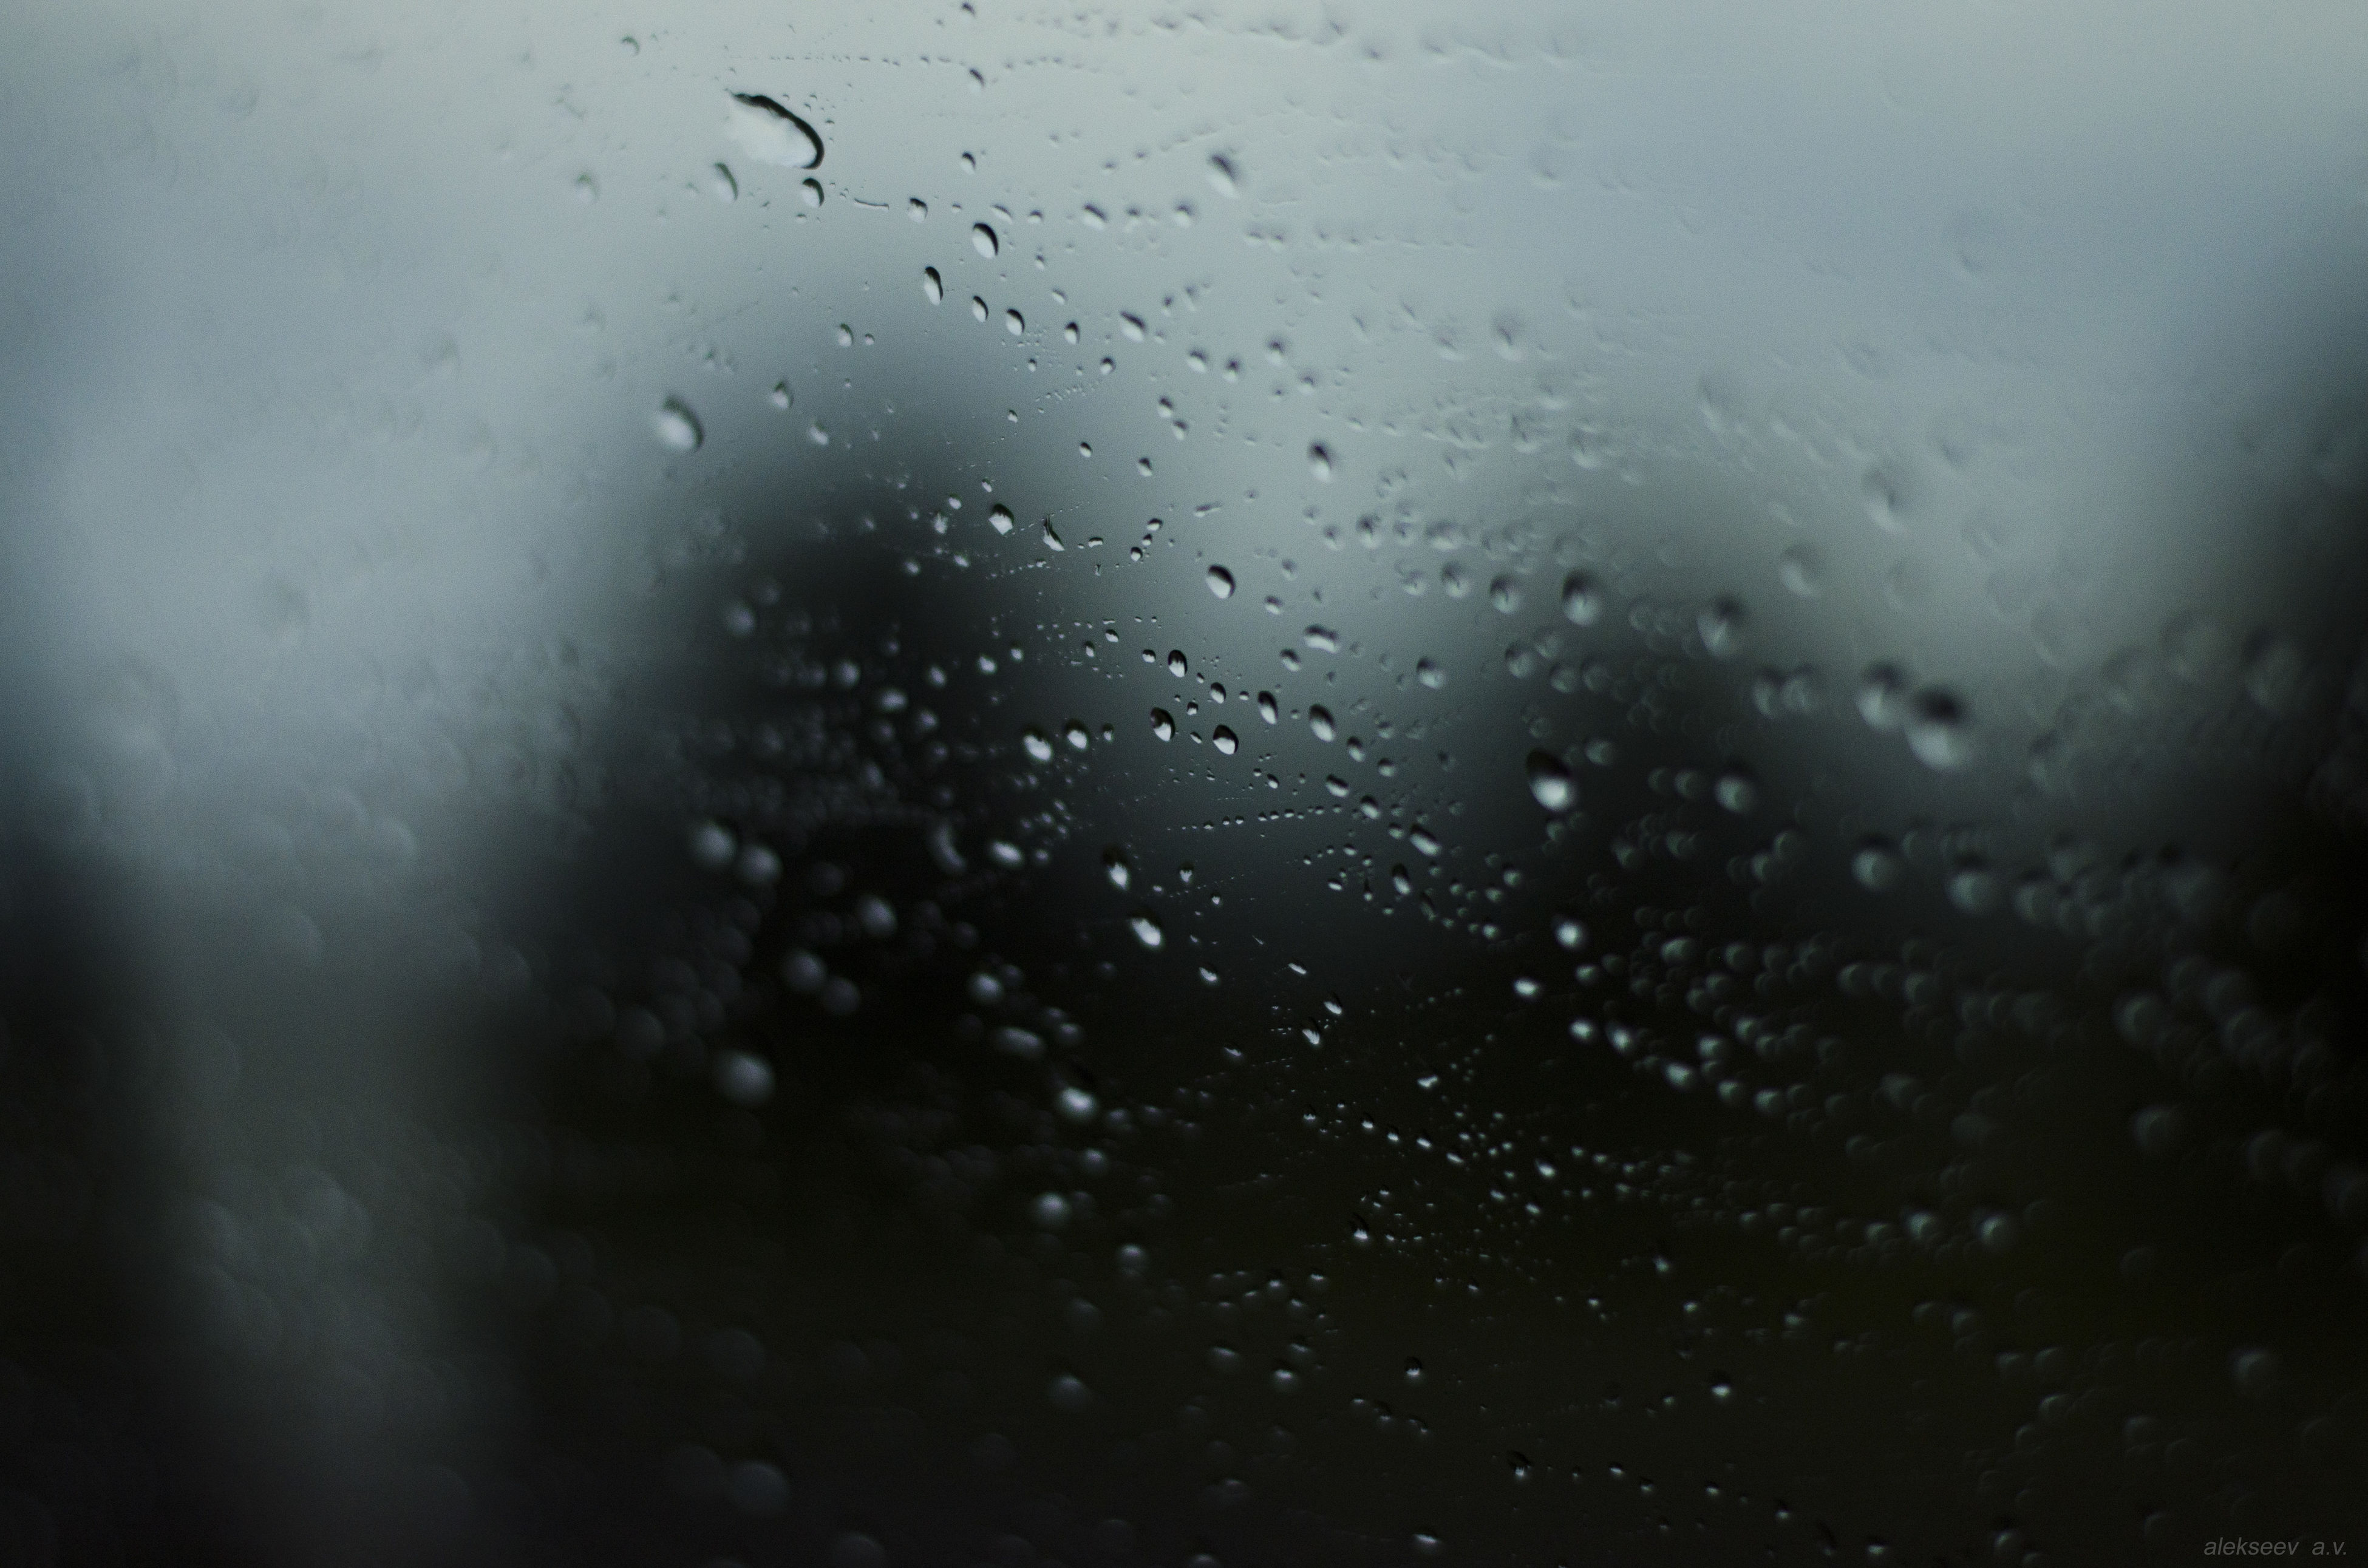 drop, wet, window, rain, water, weather, season, sky, full frame, backgrounds, close-up, focus on foreground, droplet, no people, day, nature, overcast, detail